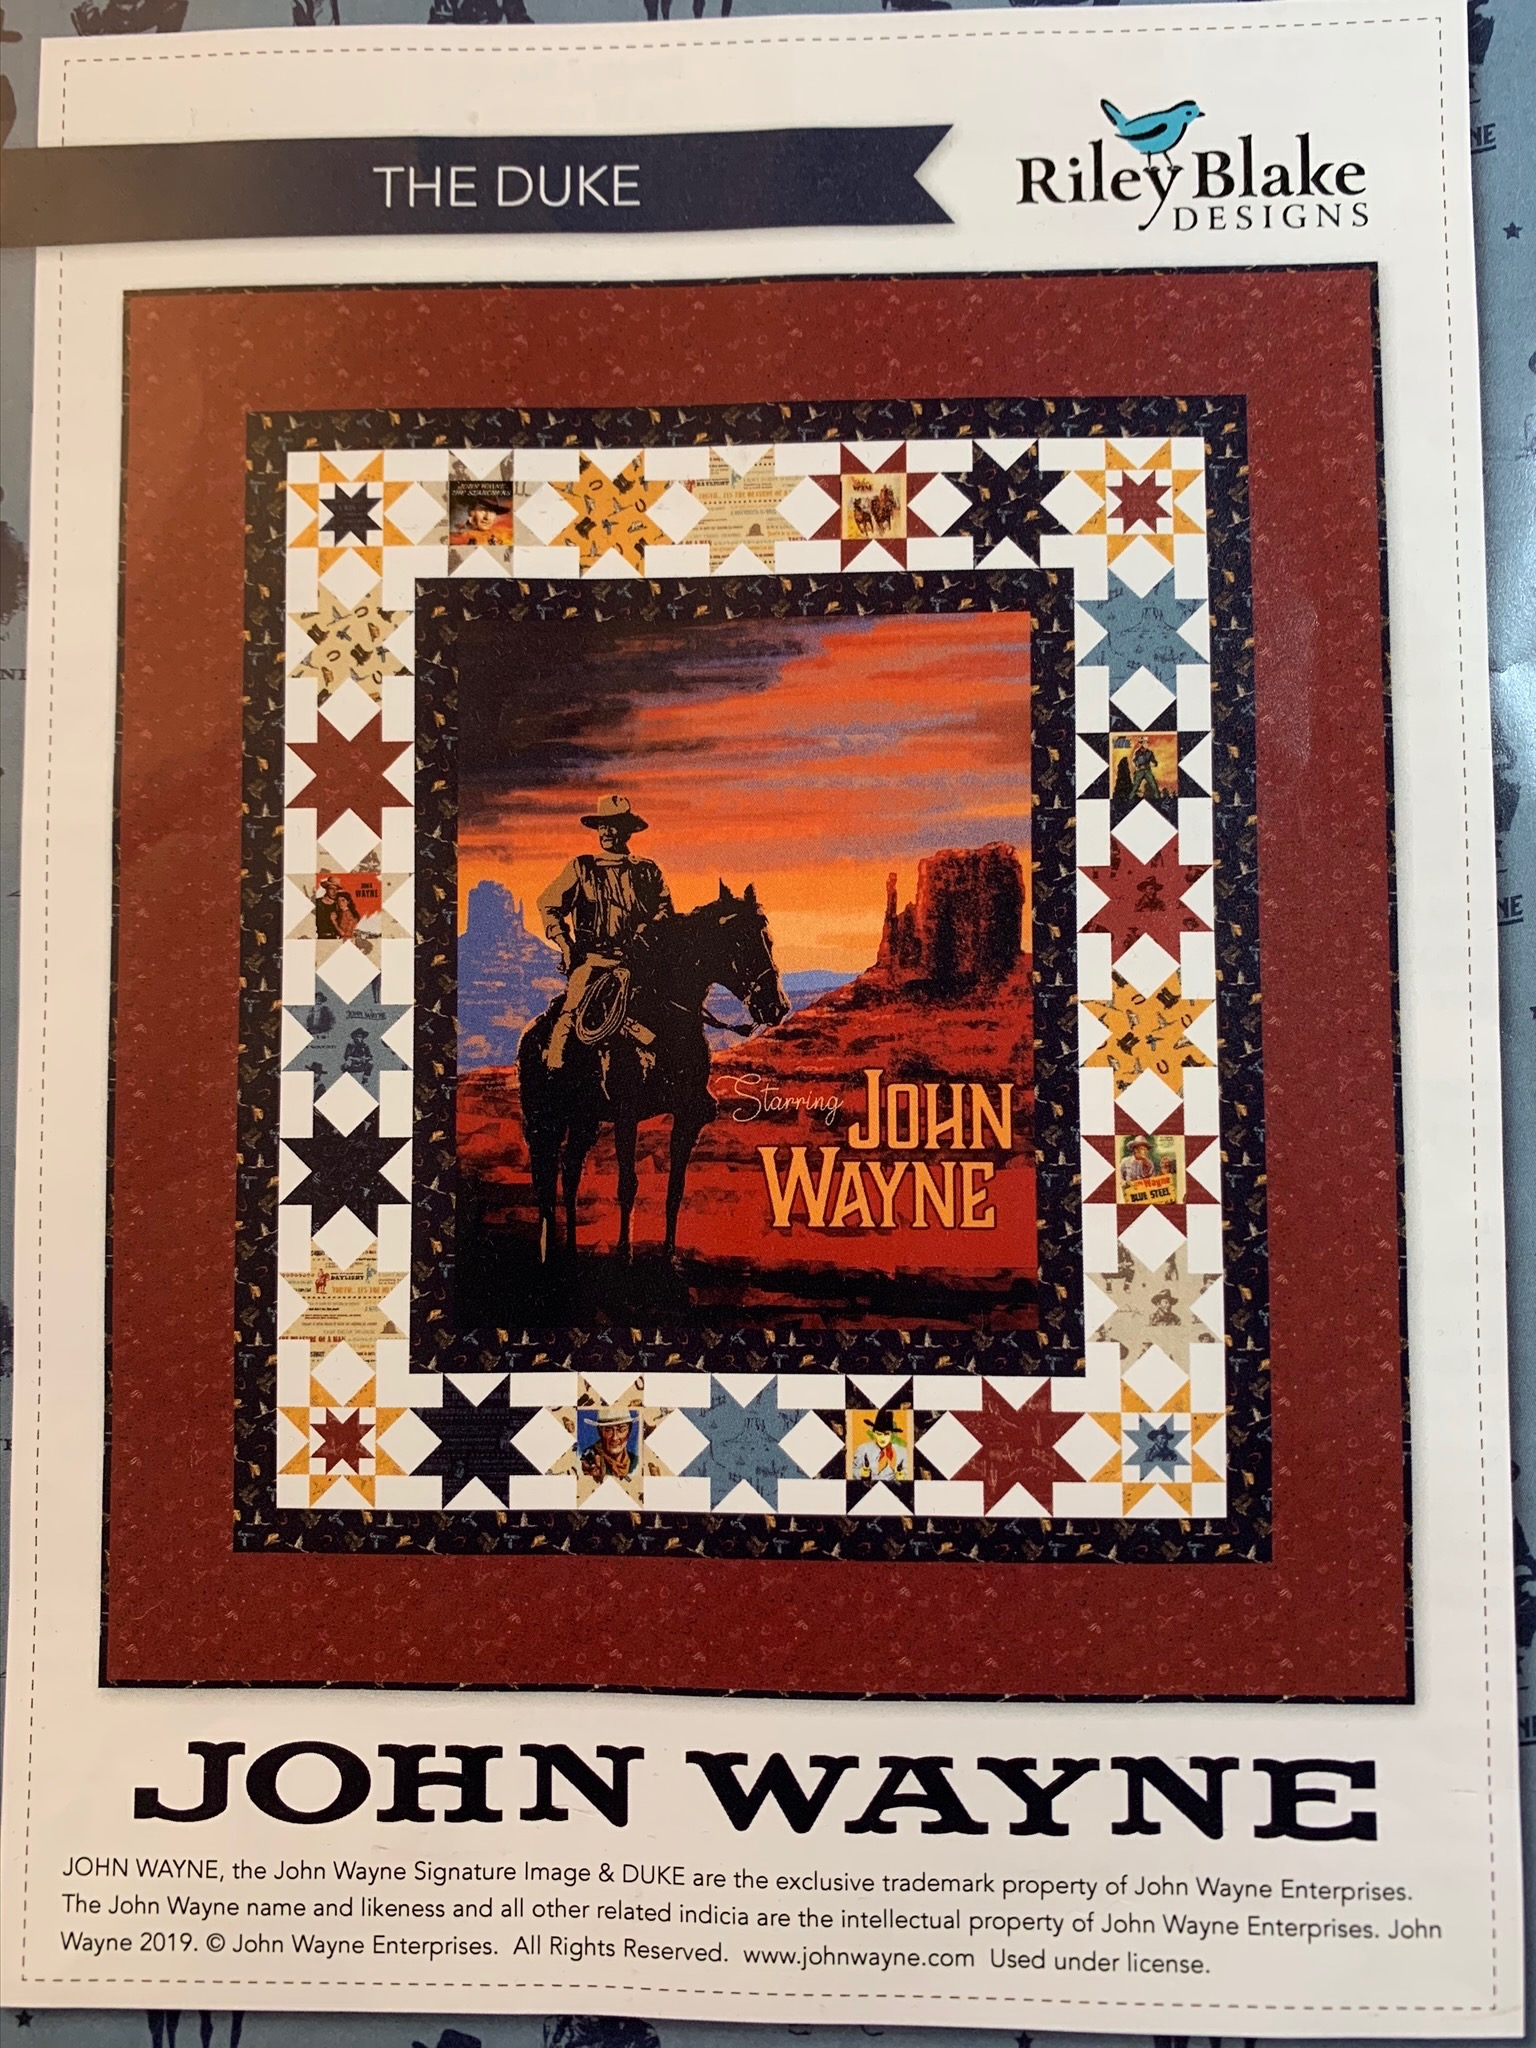 The Making Of John Wayne Quilt By Riley Blake